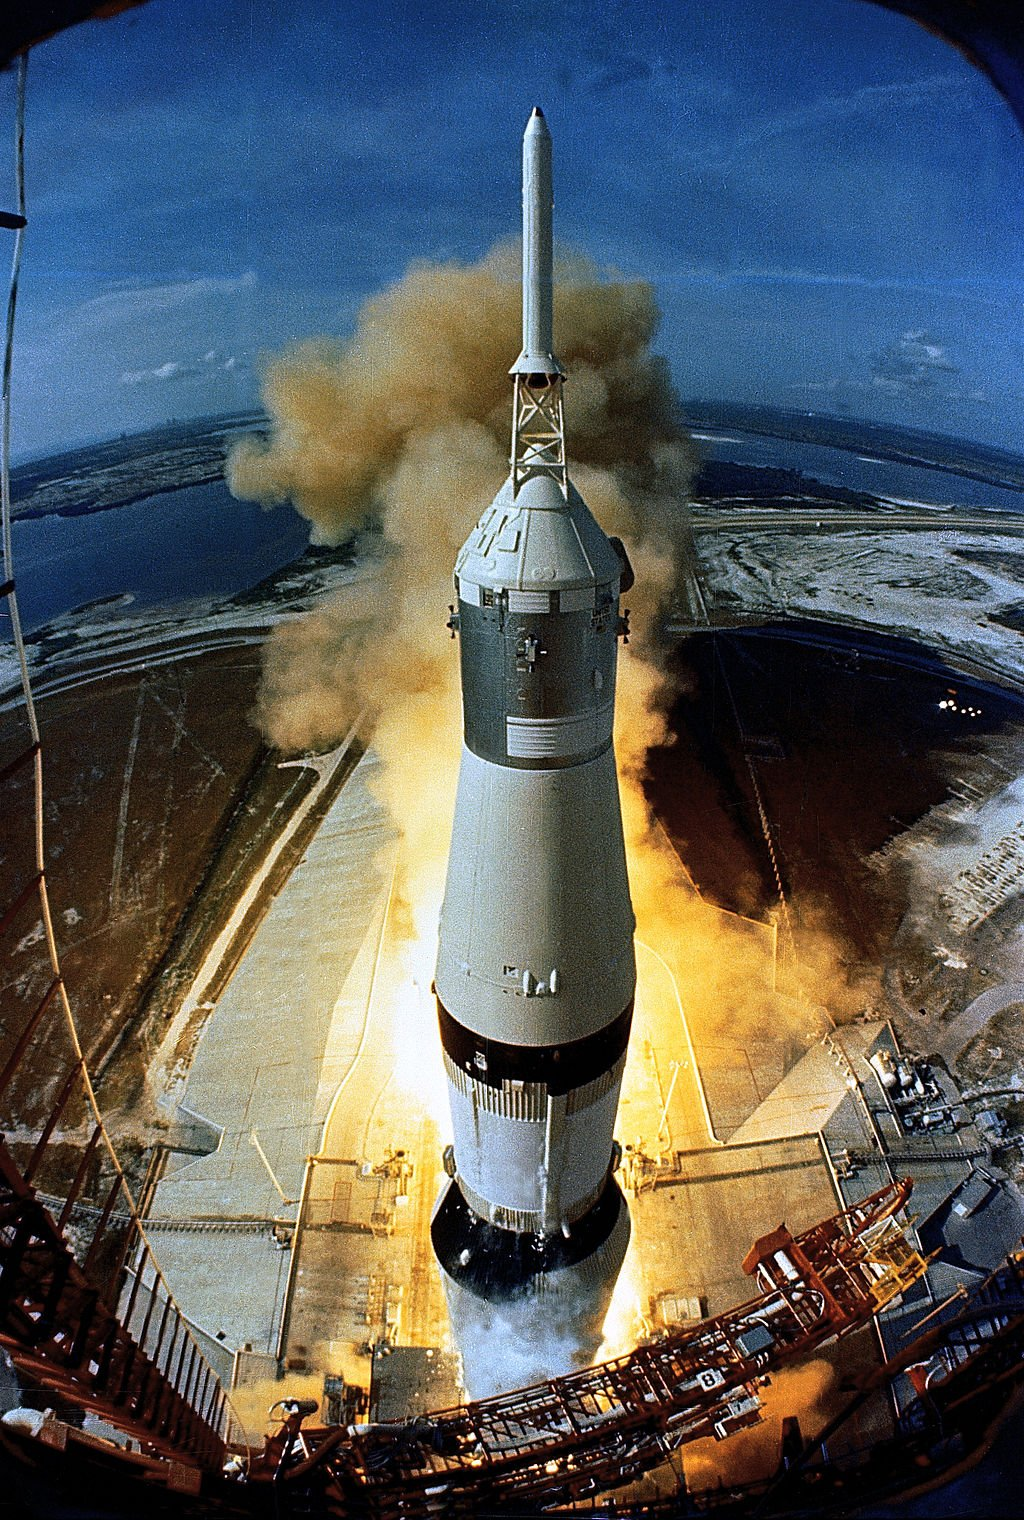 Apollo 11's Saturn V rocket launched from the Kennedy Space Center's Launch Pad 39A, the only one of the original pads still in use today. Courtesy of NASA, Wikimedia Commons.